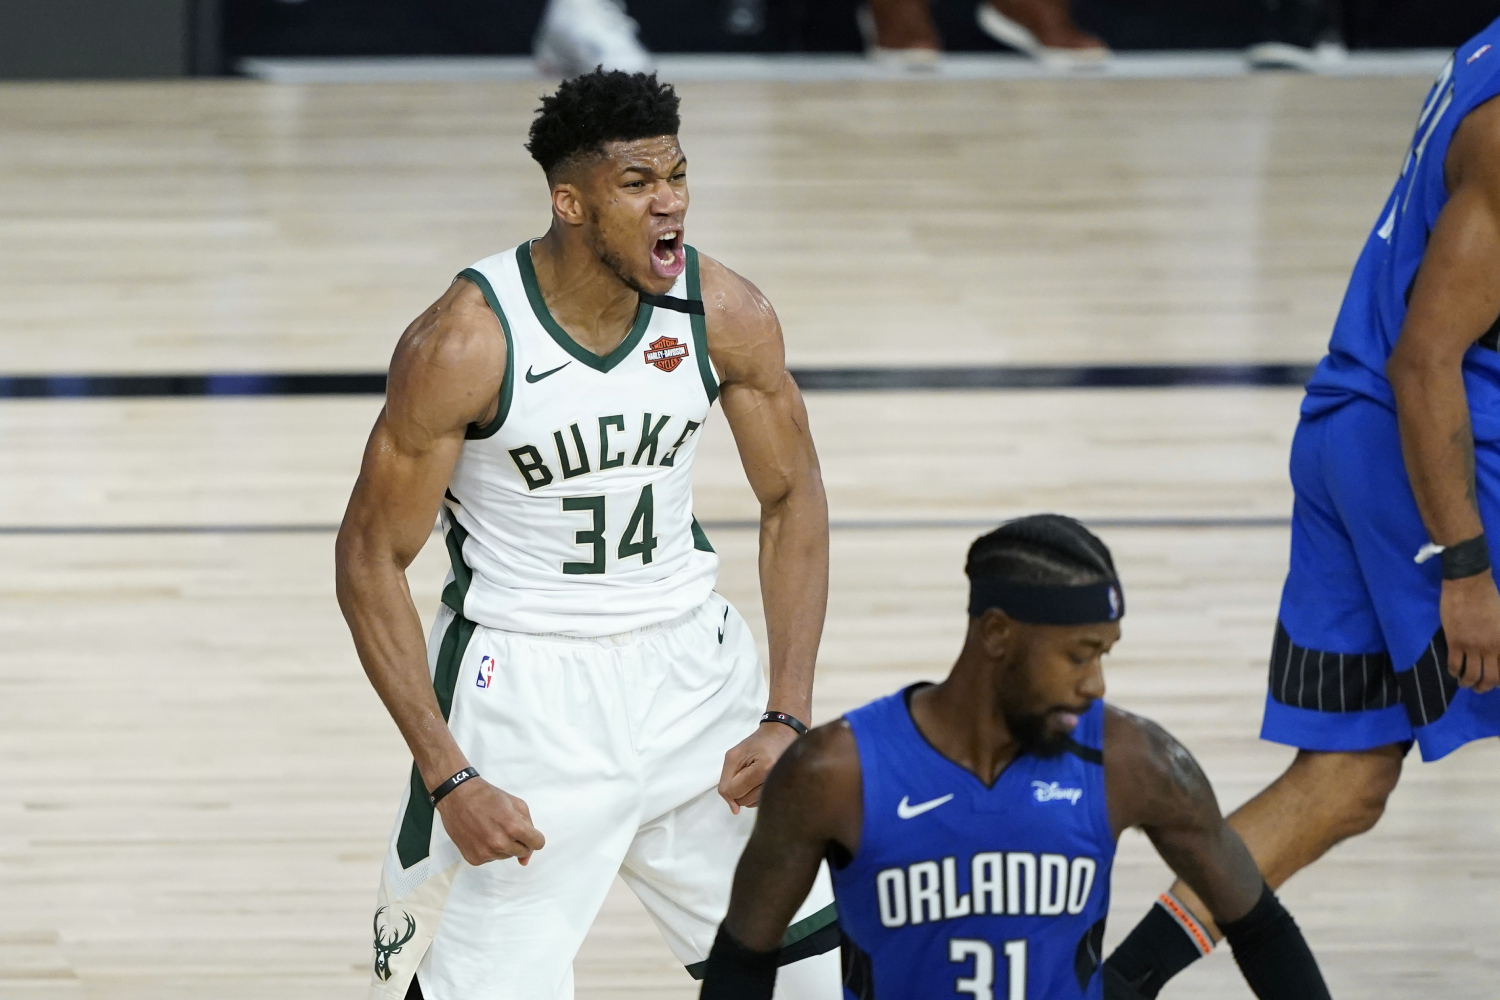 The Milwaukee Bucks Have Potentially Found Their $80 Million Man To Pair With Giannis Antetokounmpo